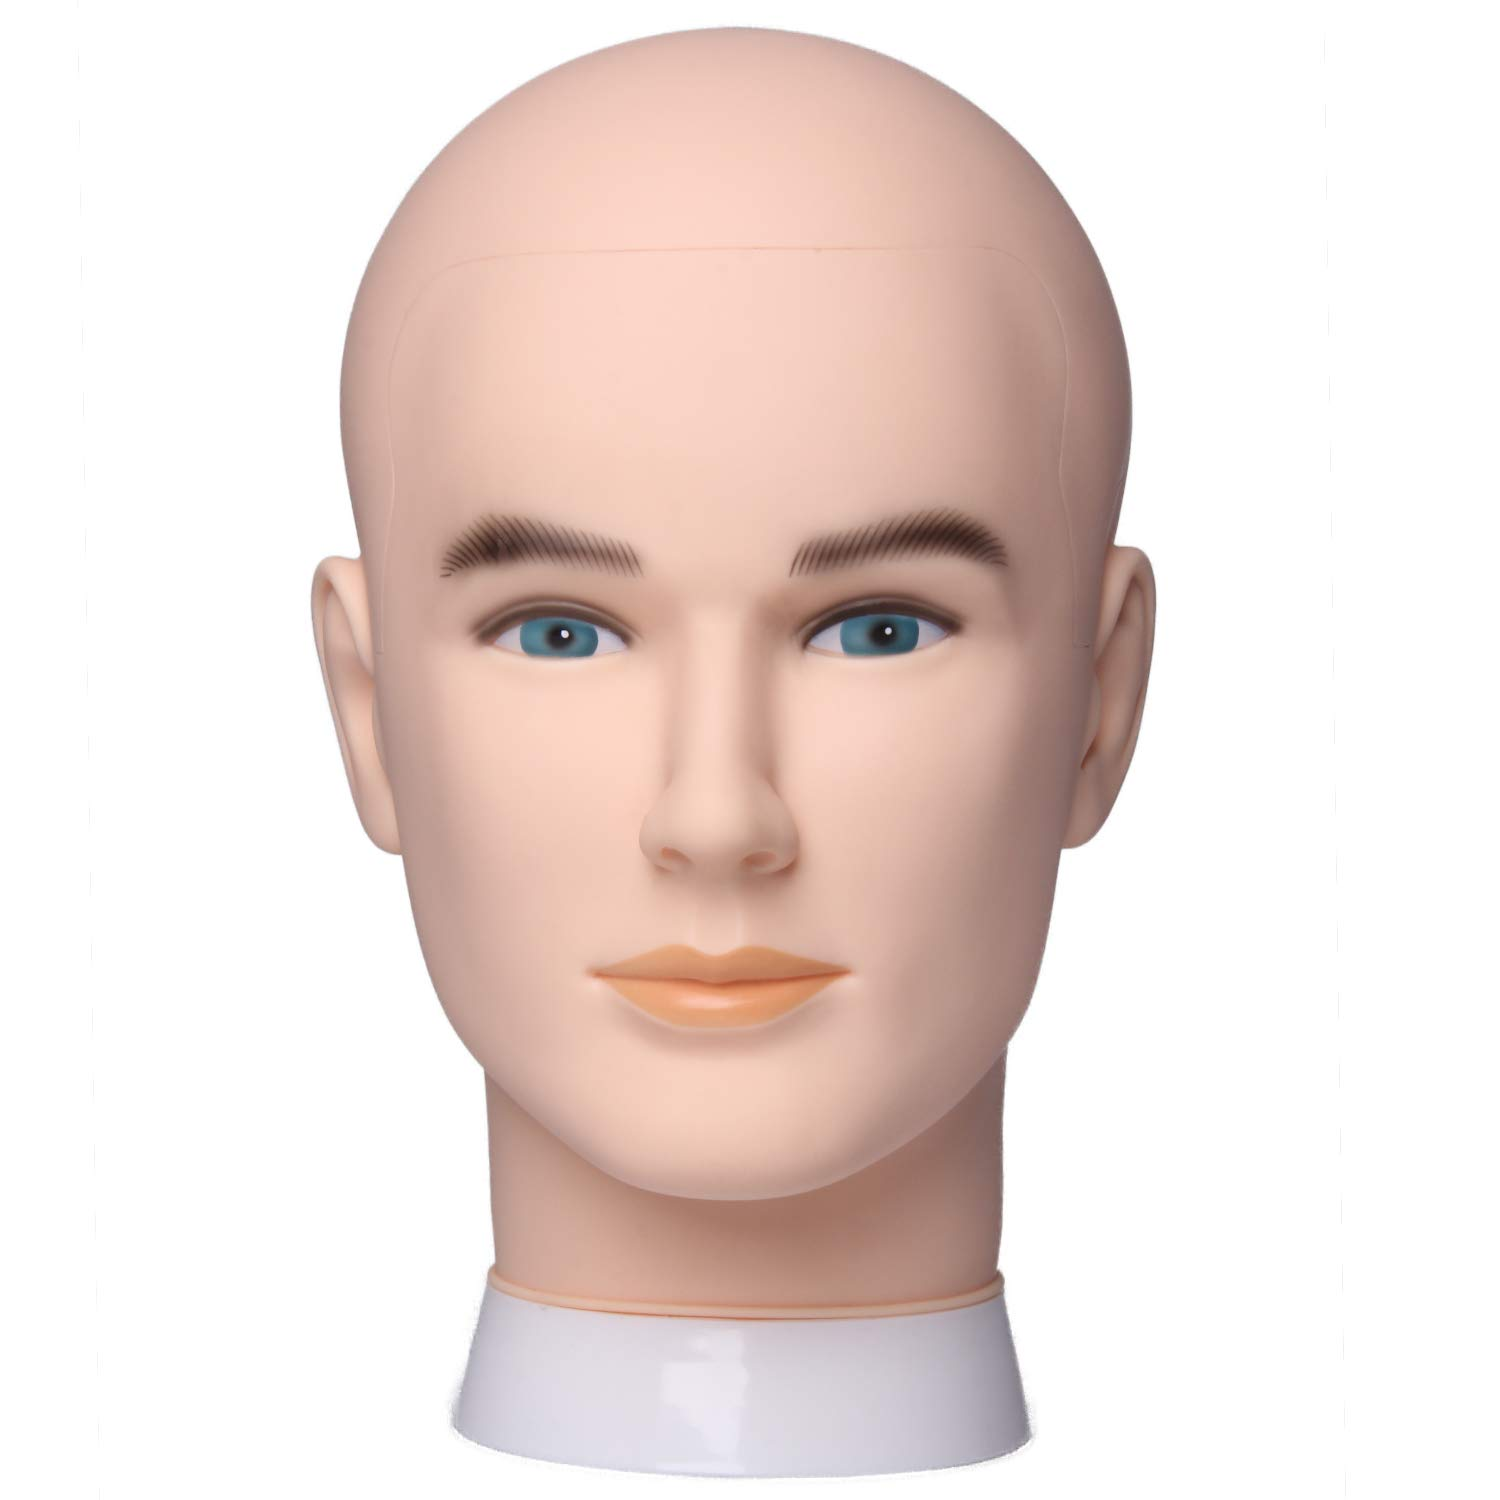 HAIR WAY Bald Mannequin Head Male Professional Cosmetology for Wig Making and Display, Hat, Helmet, Glasses or Masks Display Head Model with T-pins